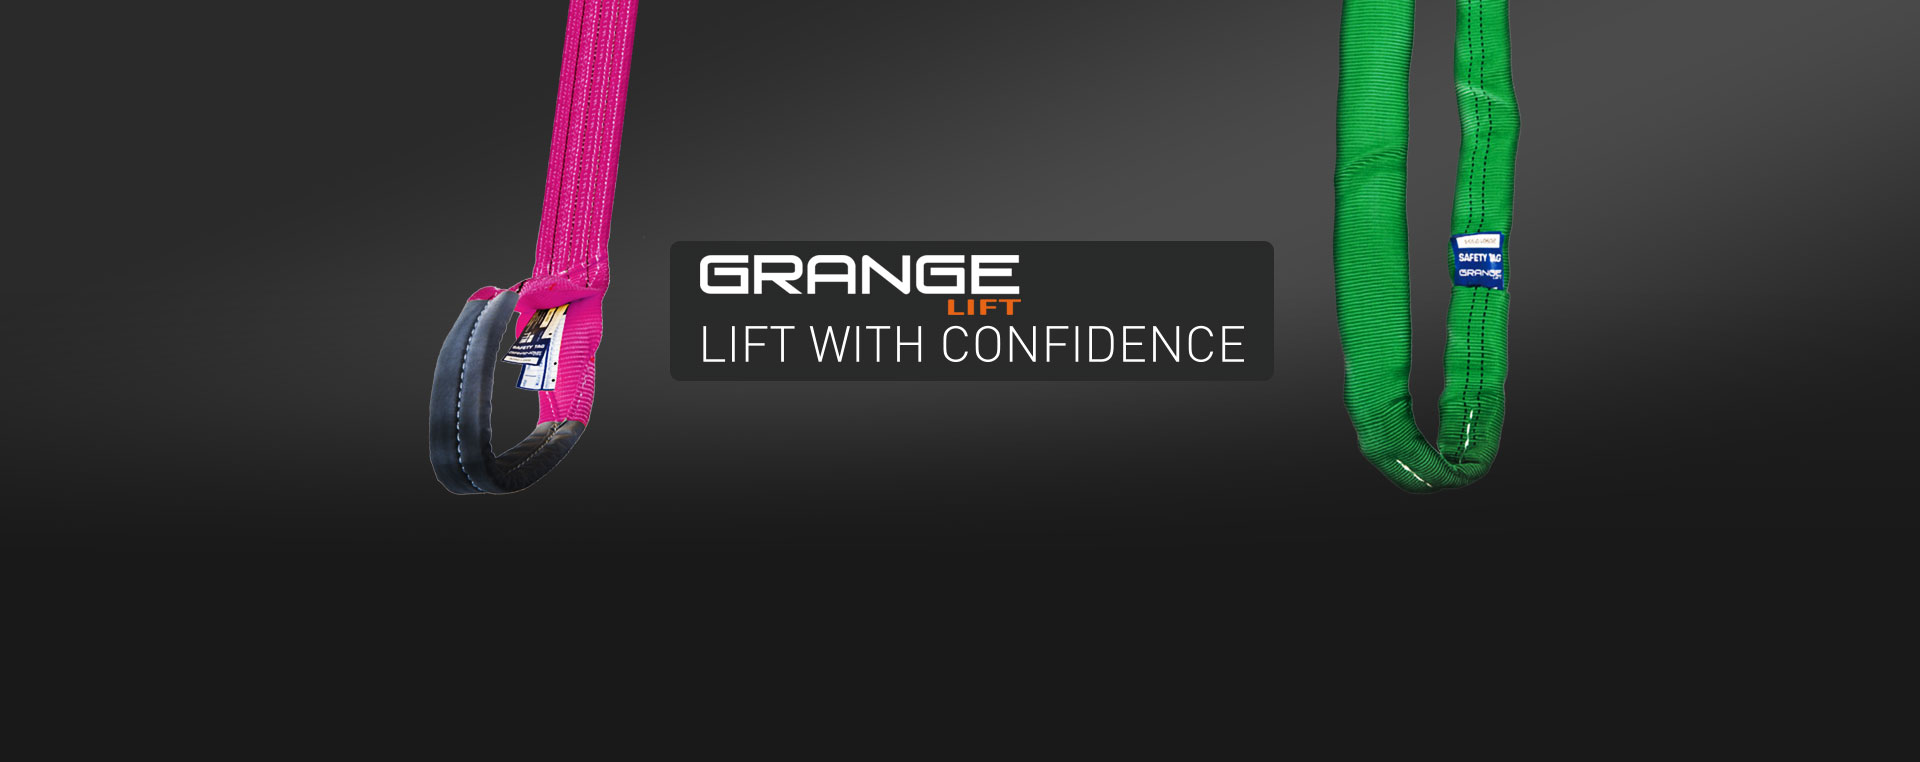 Lift With Confidence